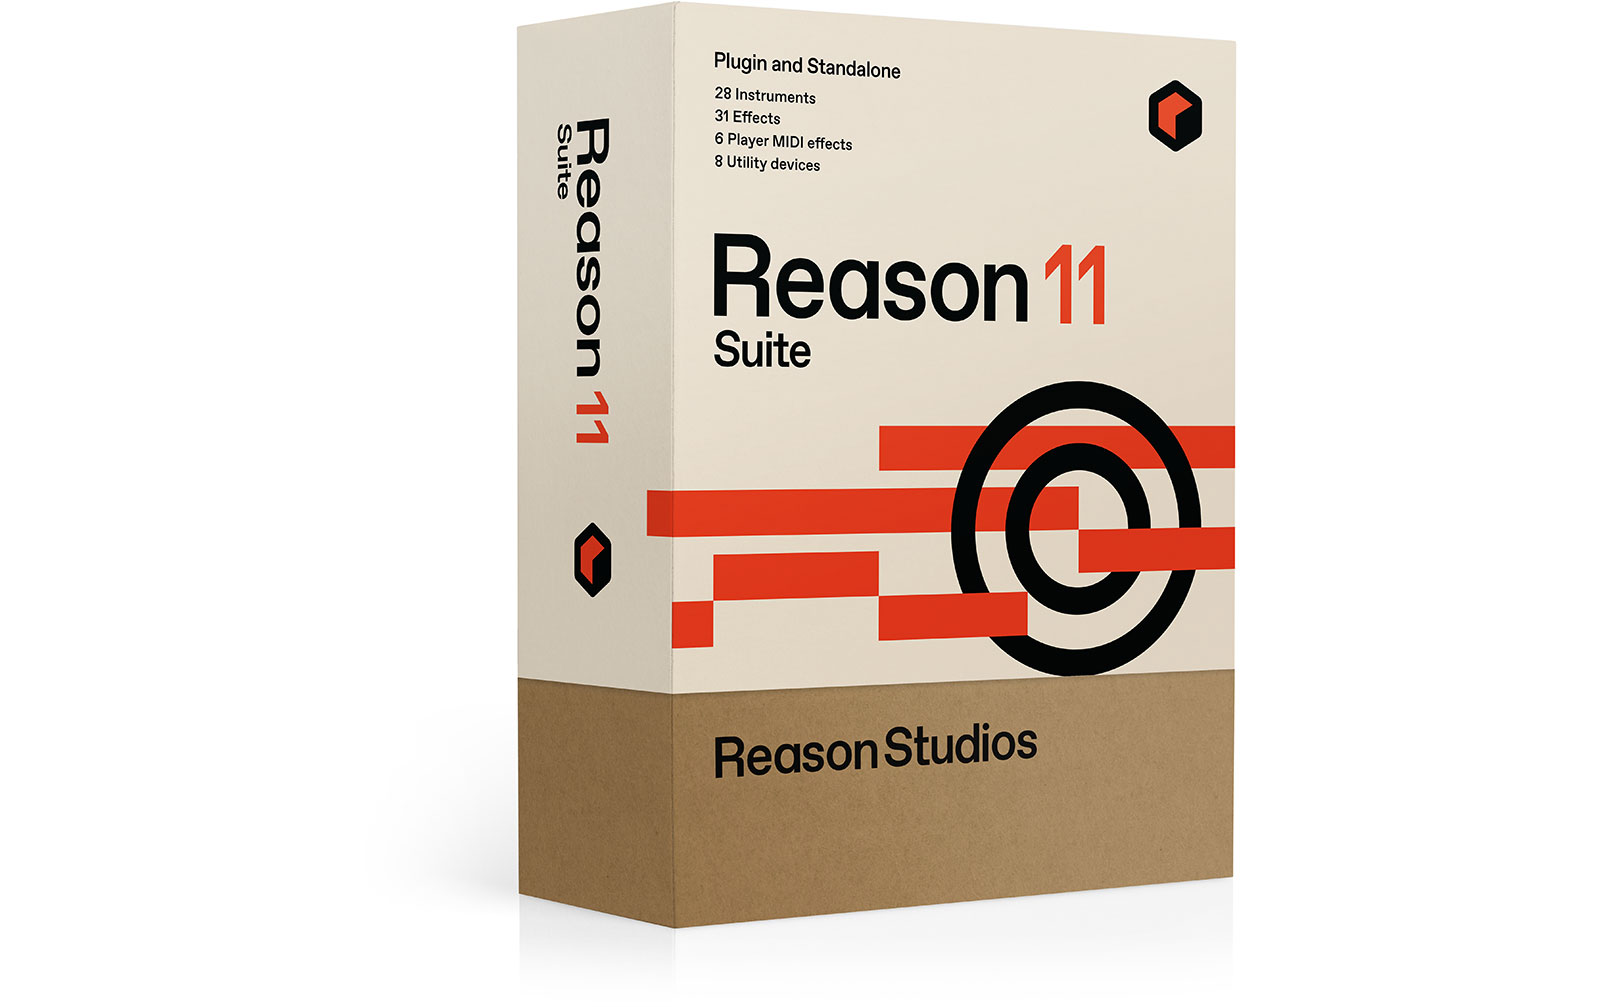 reason-studios-reason-11-suite-box